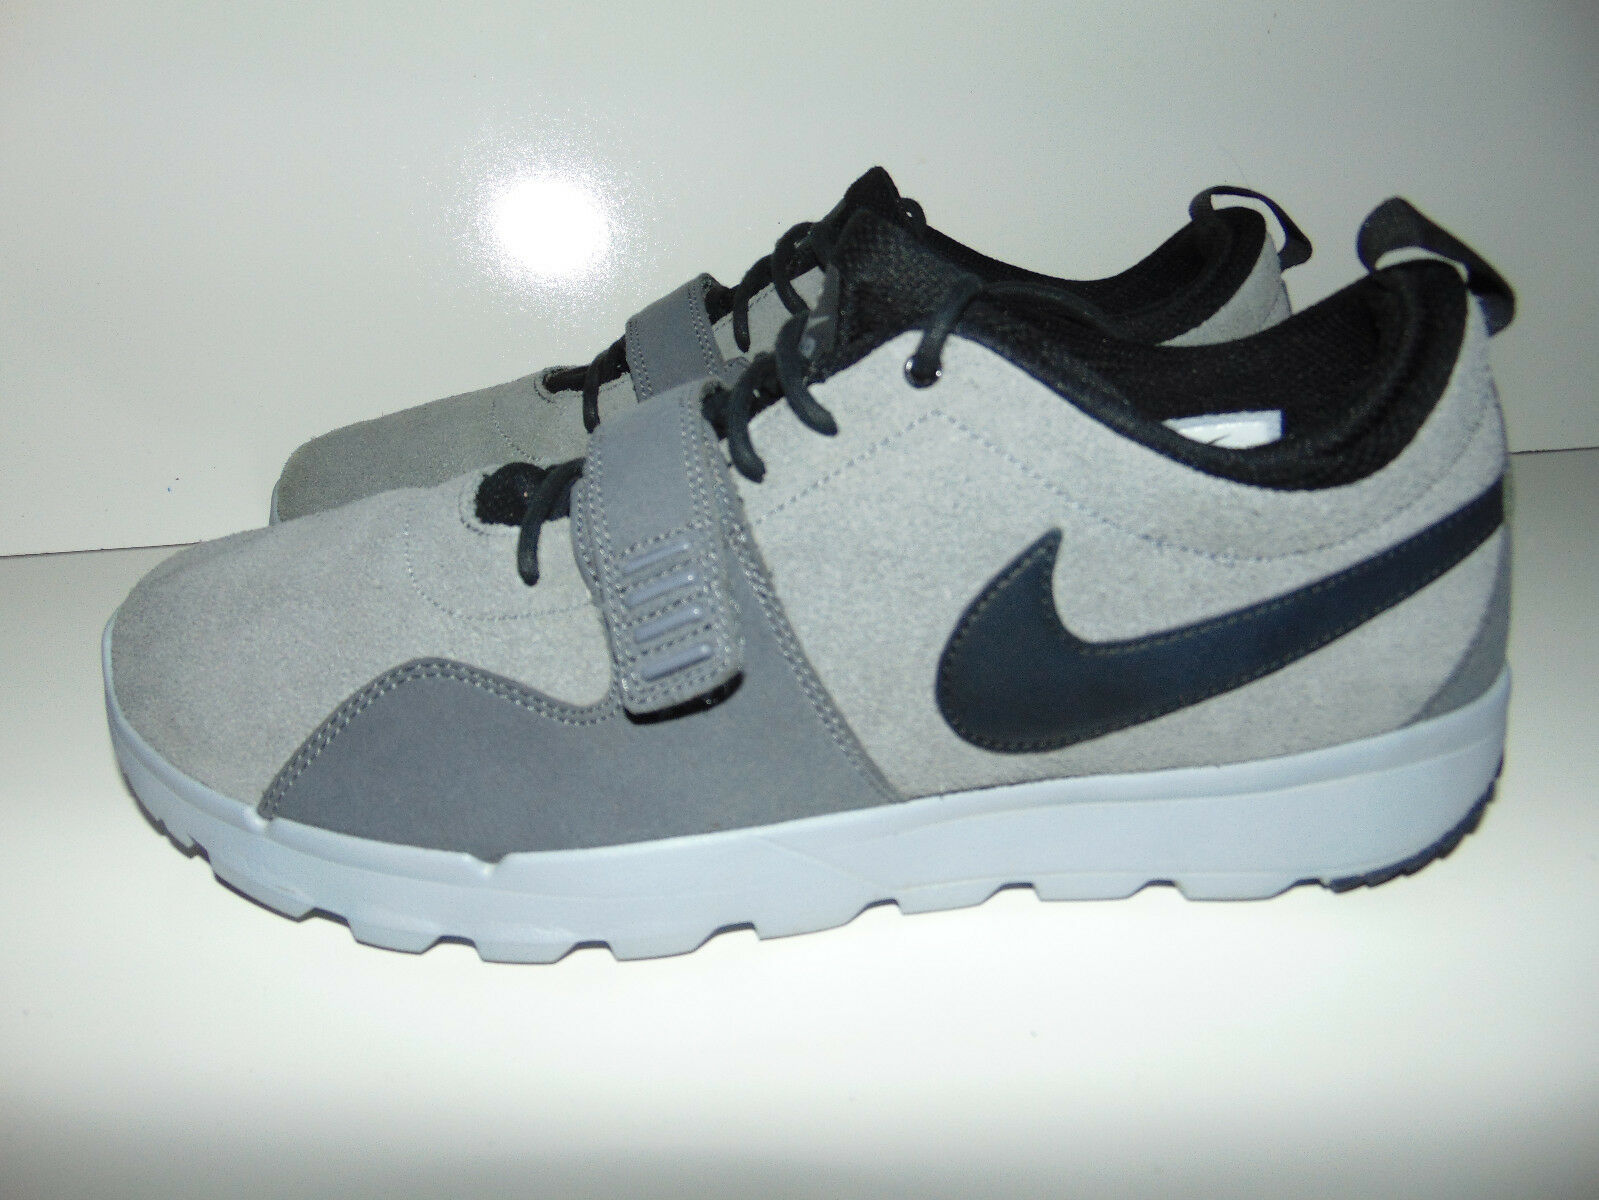 NIKE SB TRAINERENDOR L 806309-001 COOL GREY / BLACK-DARK GRAY-WOLF GRAY SIZE 12